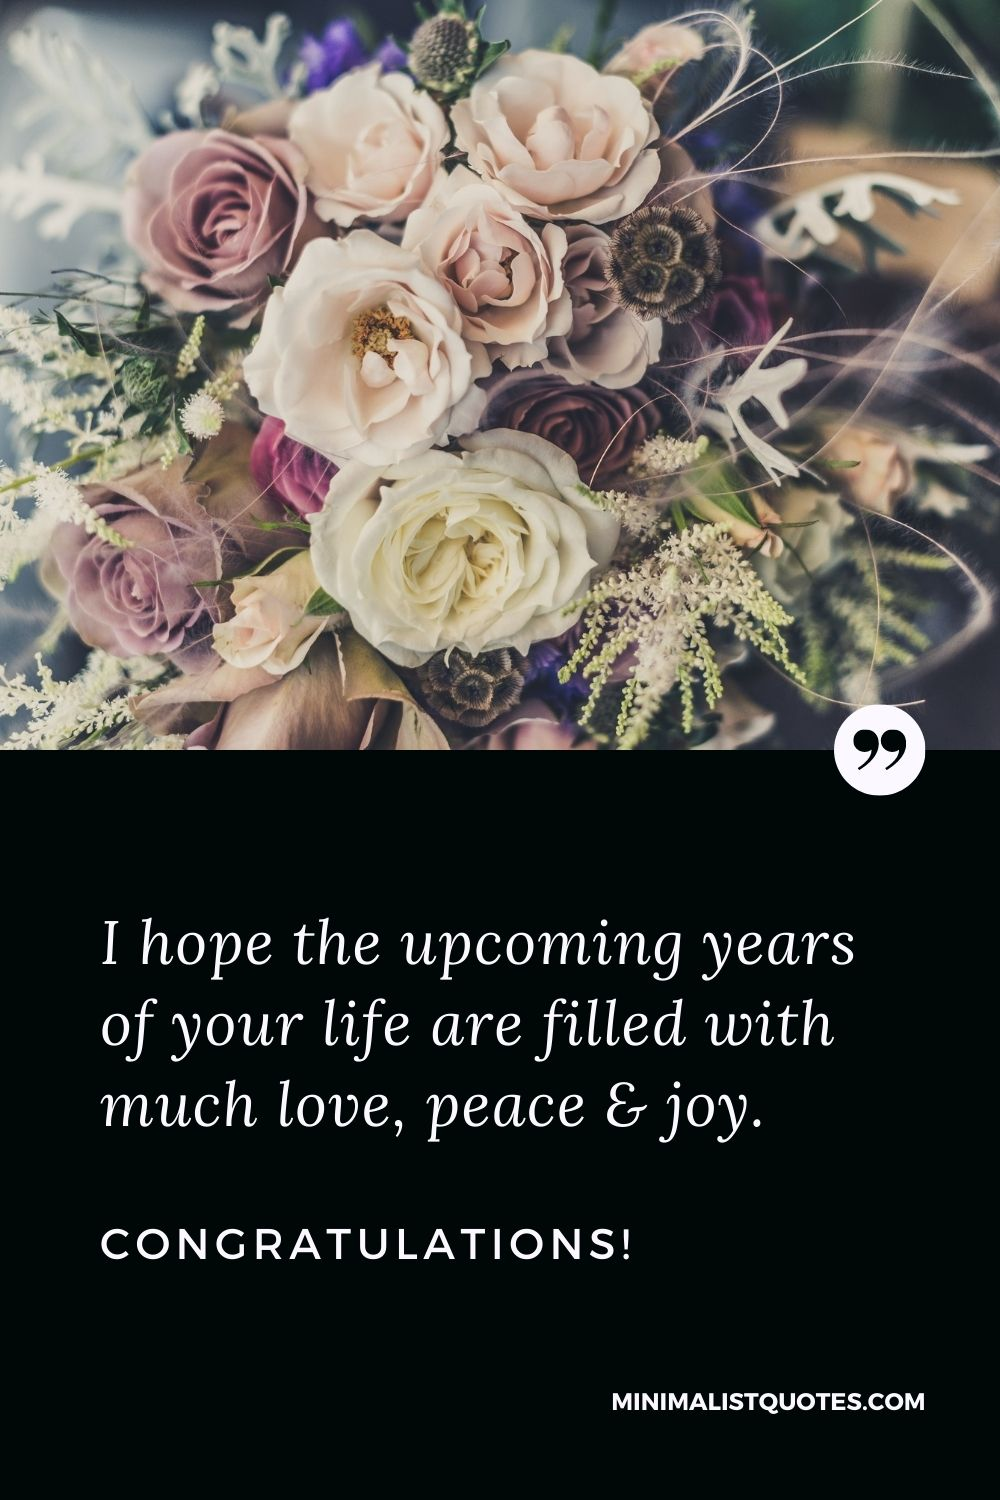 Retirement Wish, Quote & Message With Image: I hope the upcoming years of your life are filled with much love, peace & joy. Congratulations!